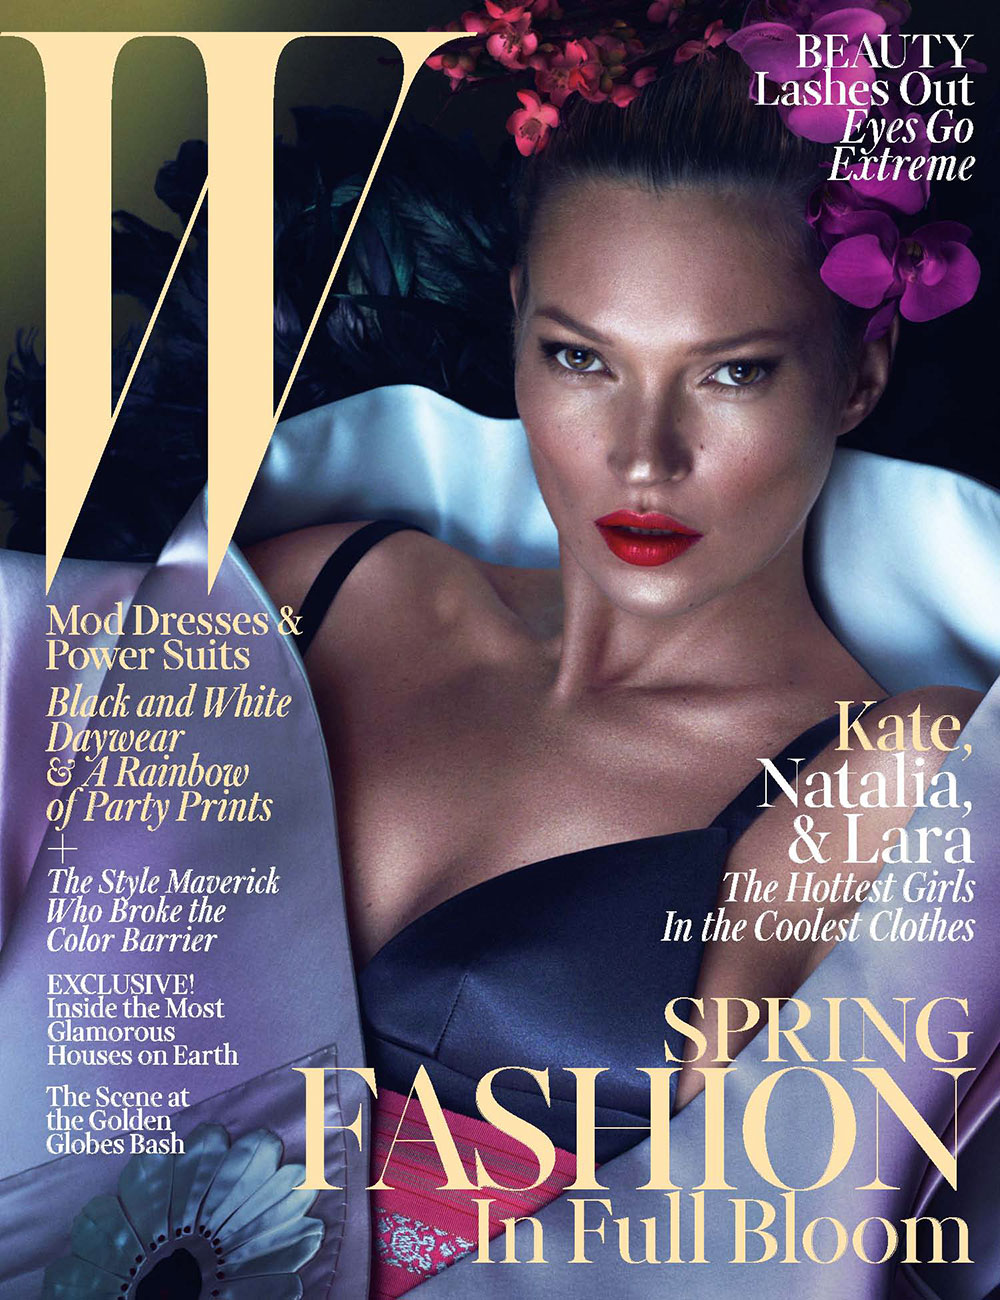 Smile: W Magazine March 2013: Kate Moss, Natalia Vodianova